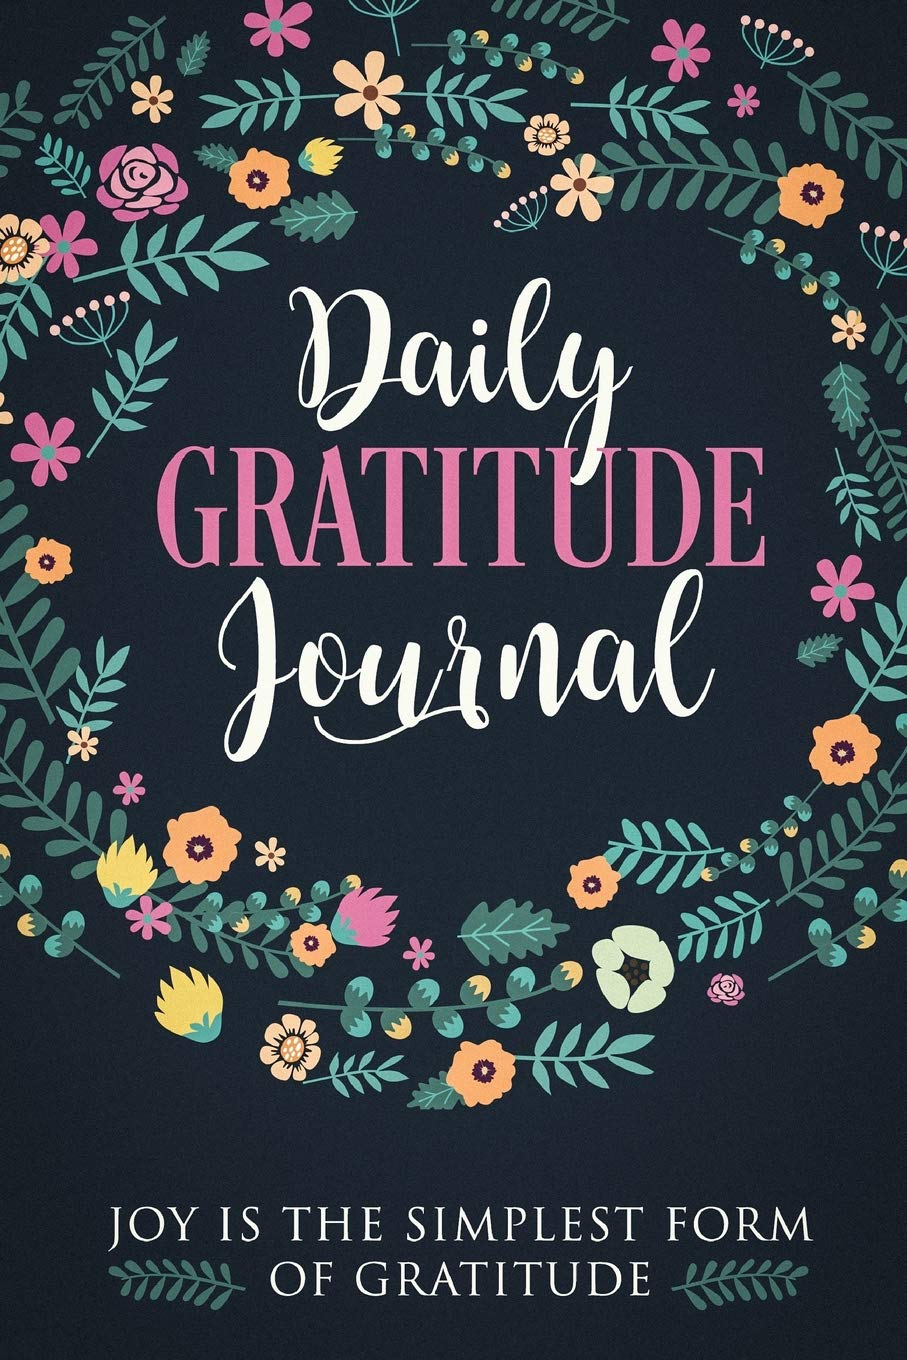 Gratitude Journal with motivational quotes